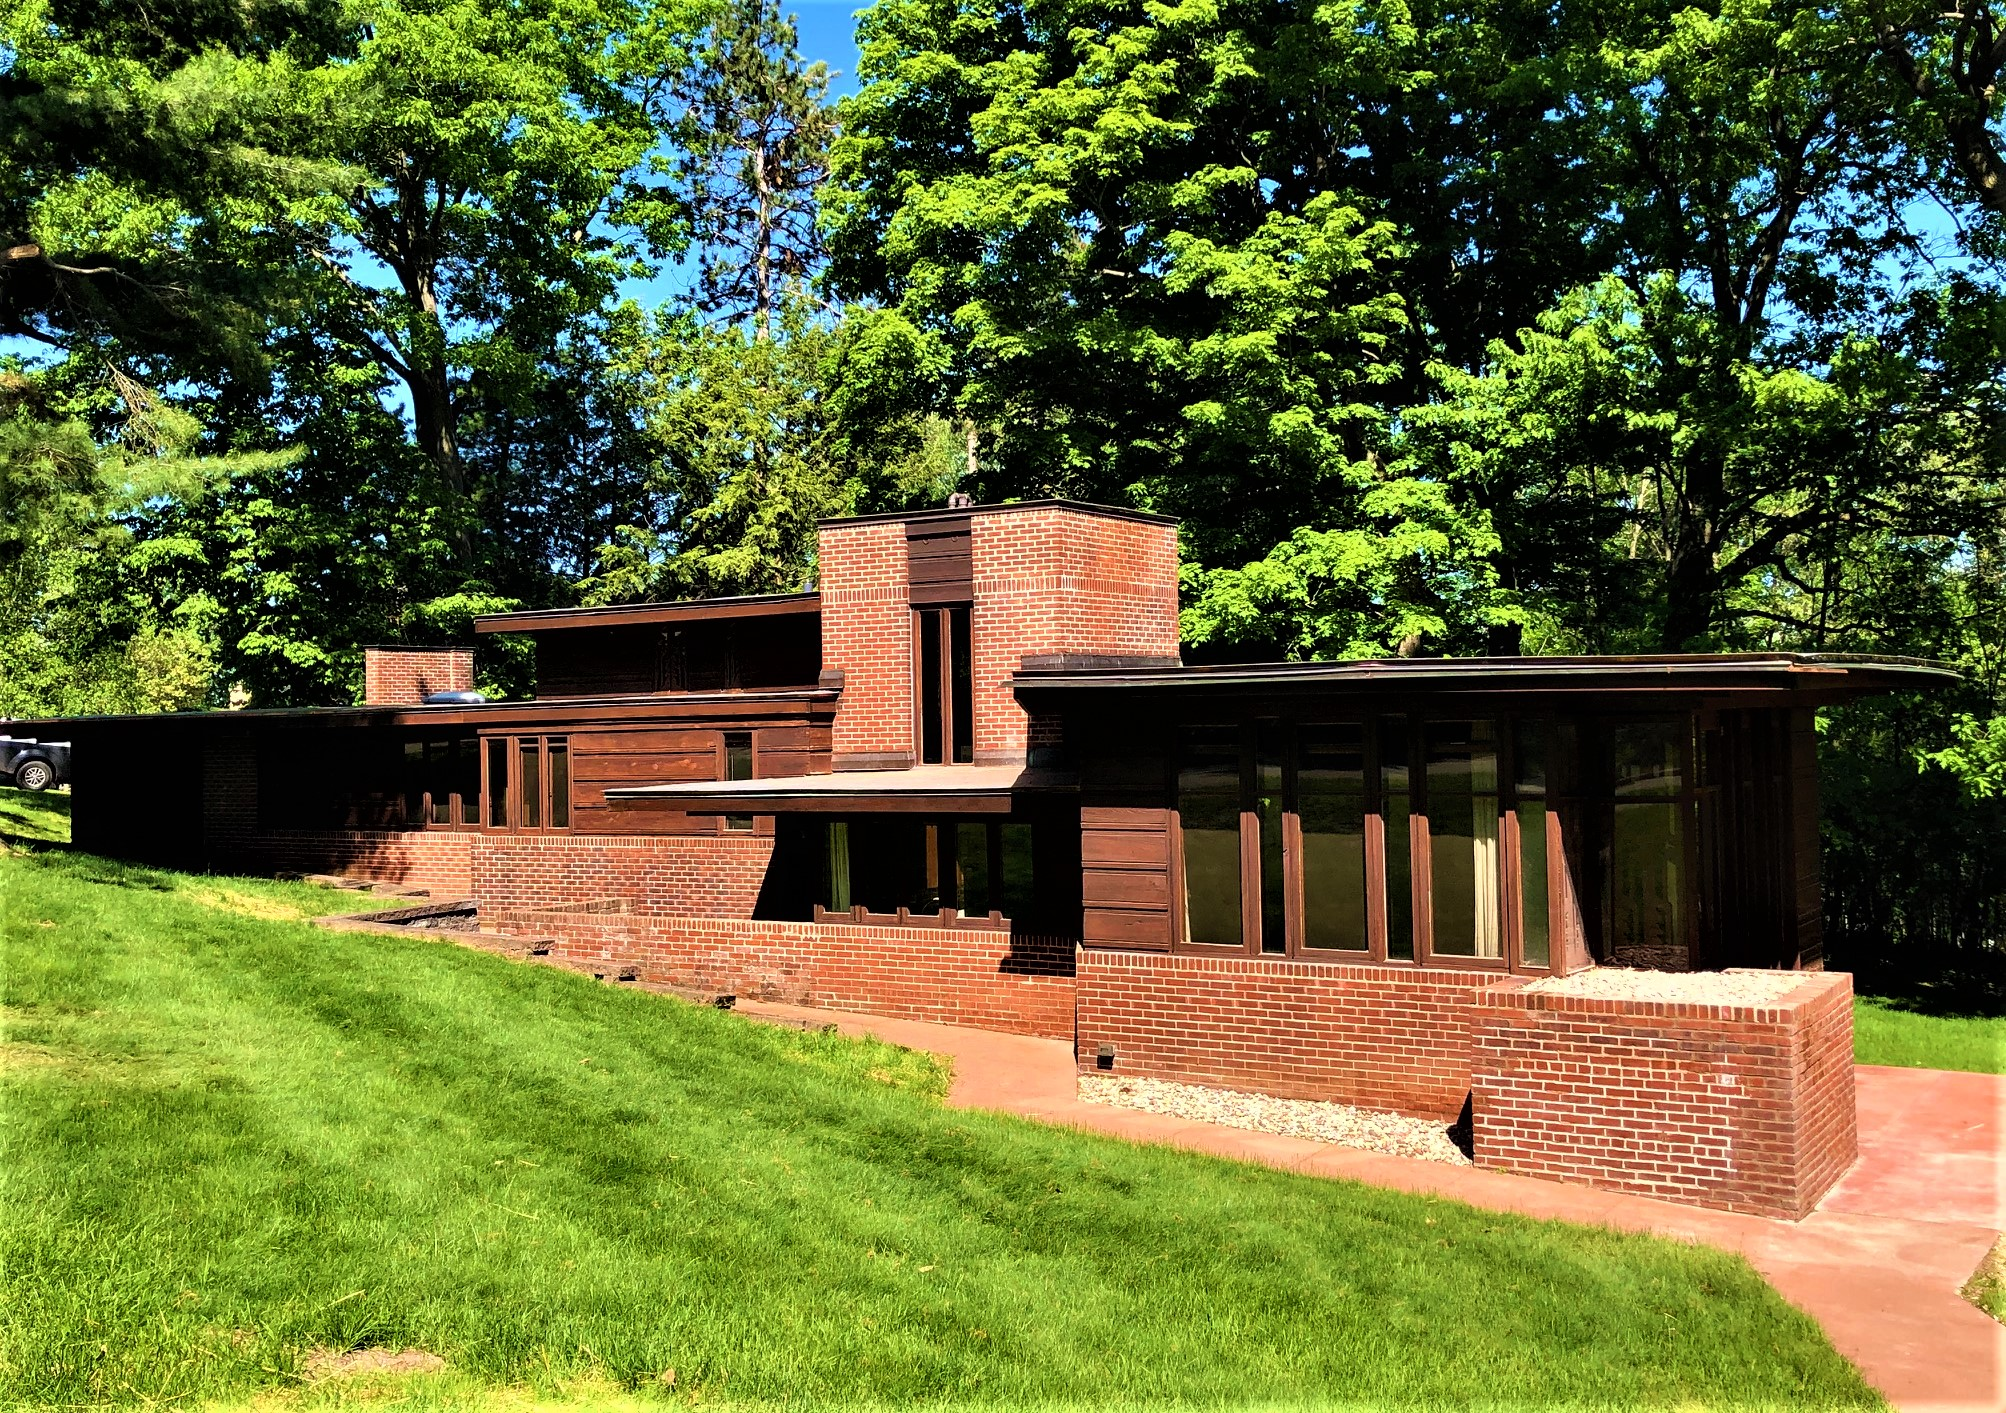 An exterior view of a brick Usonian Frank Lloyd Wright house with green grass in the front and trees in the back.